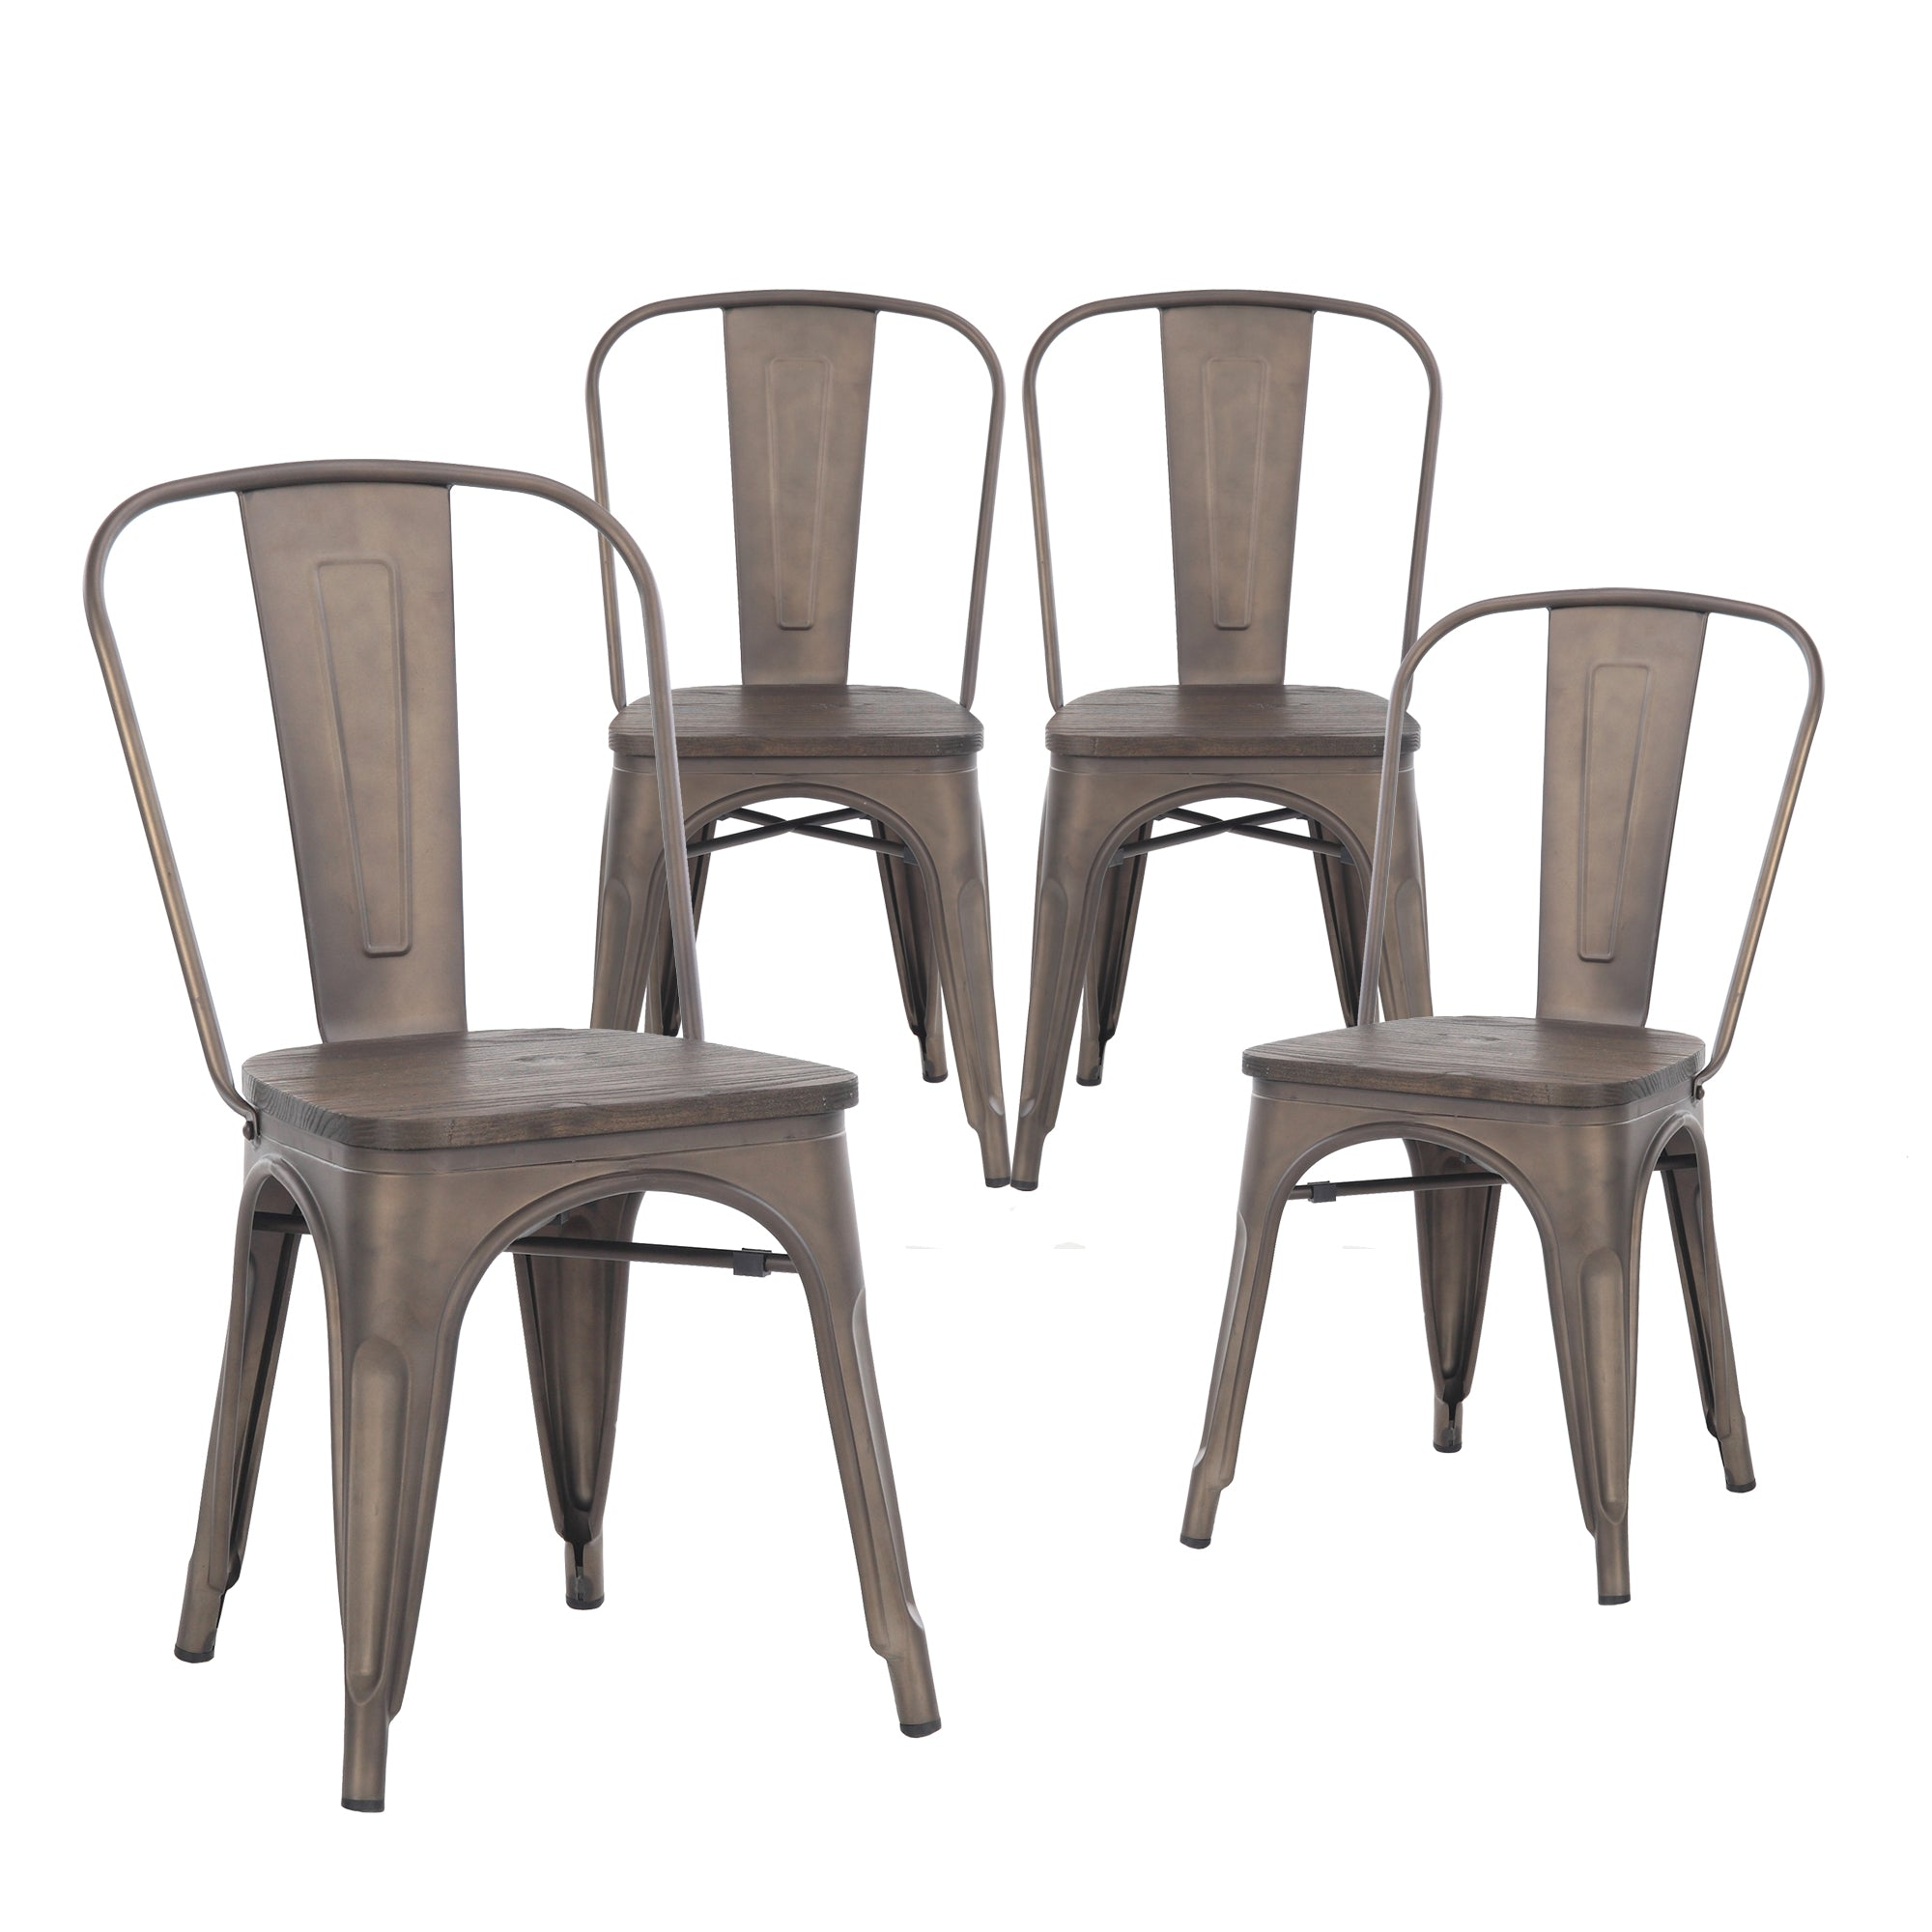 Shop Pottery Barn Dining Chairs You\'ll Love @ Buschman Store